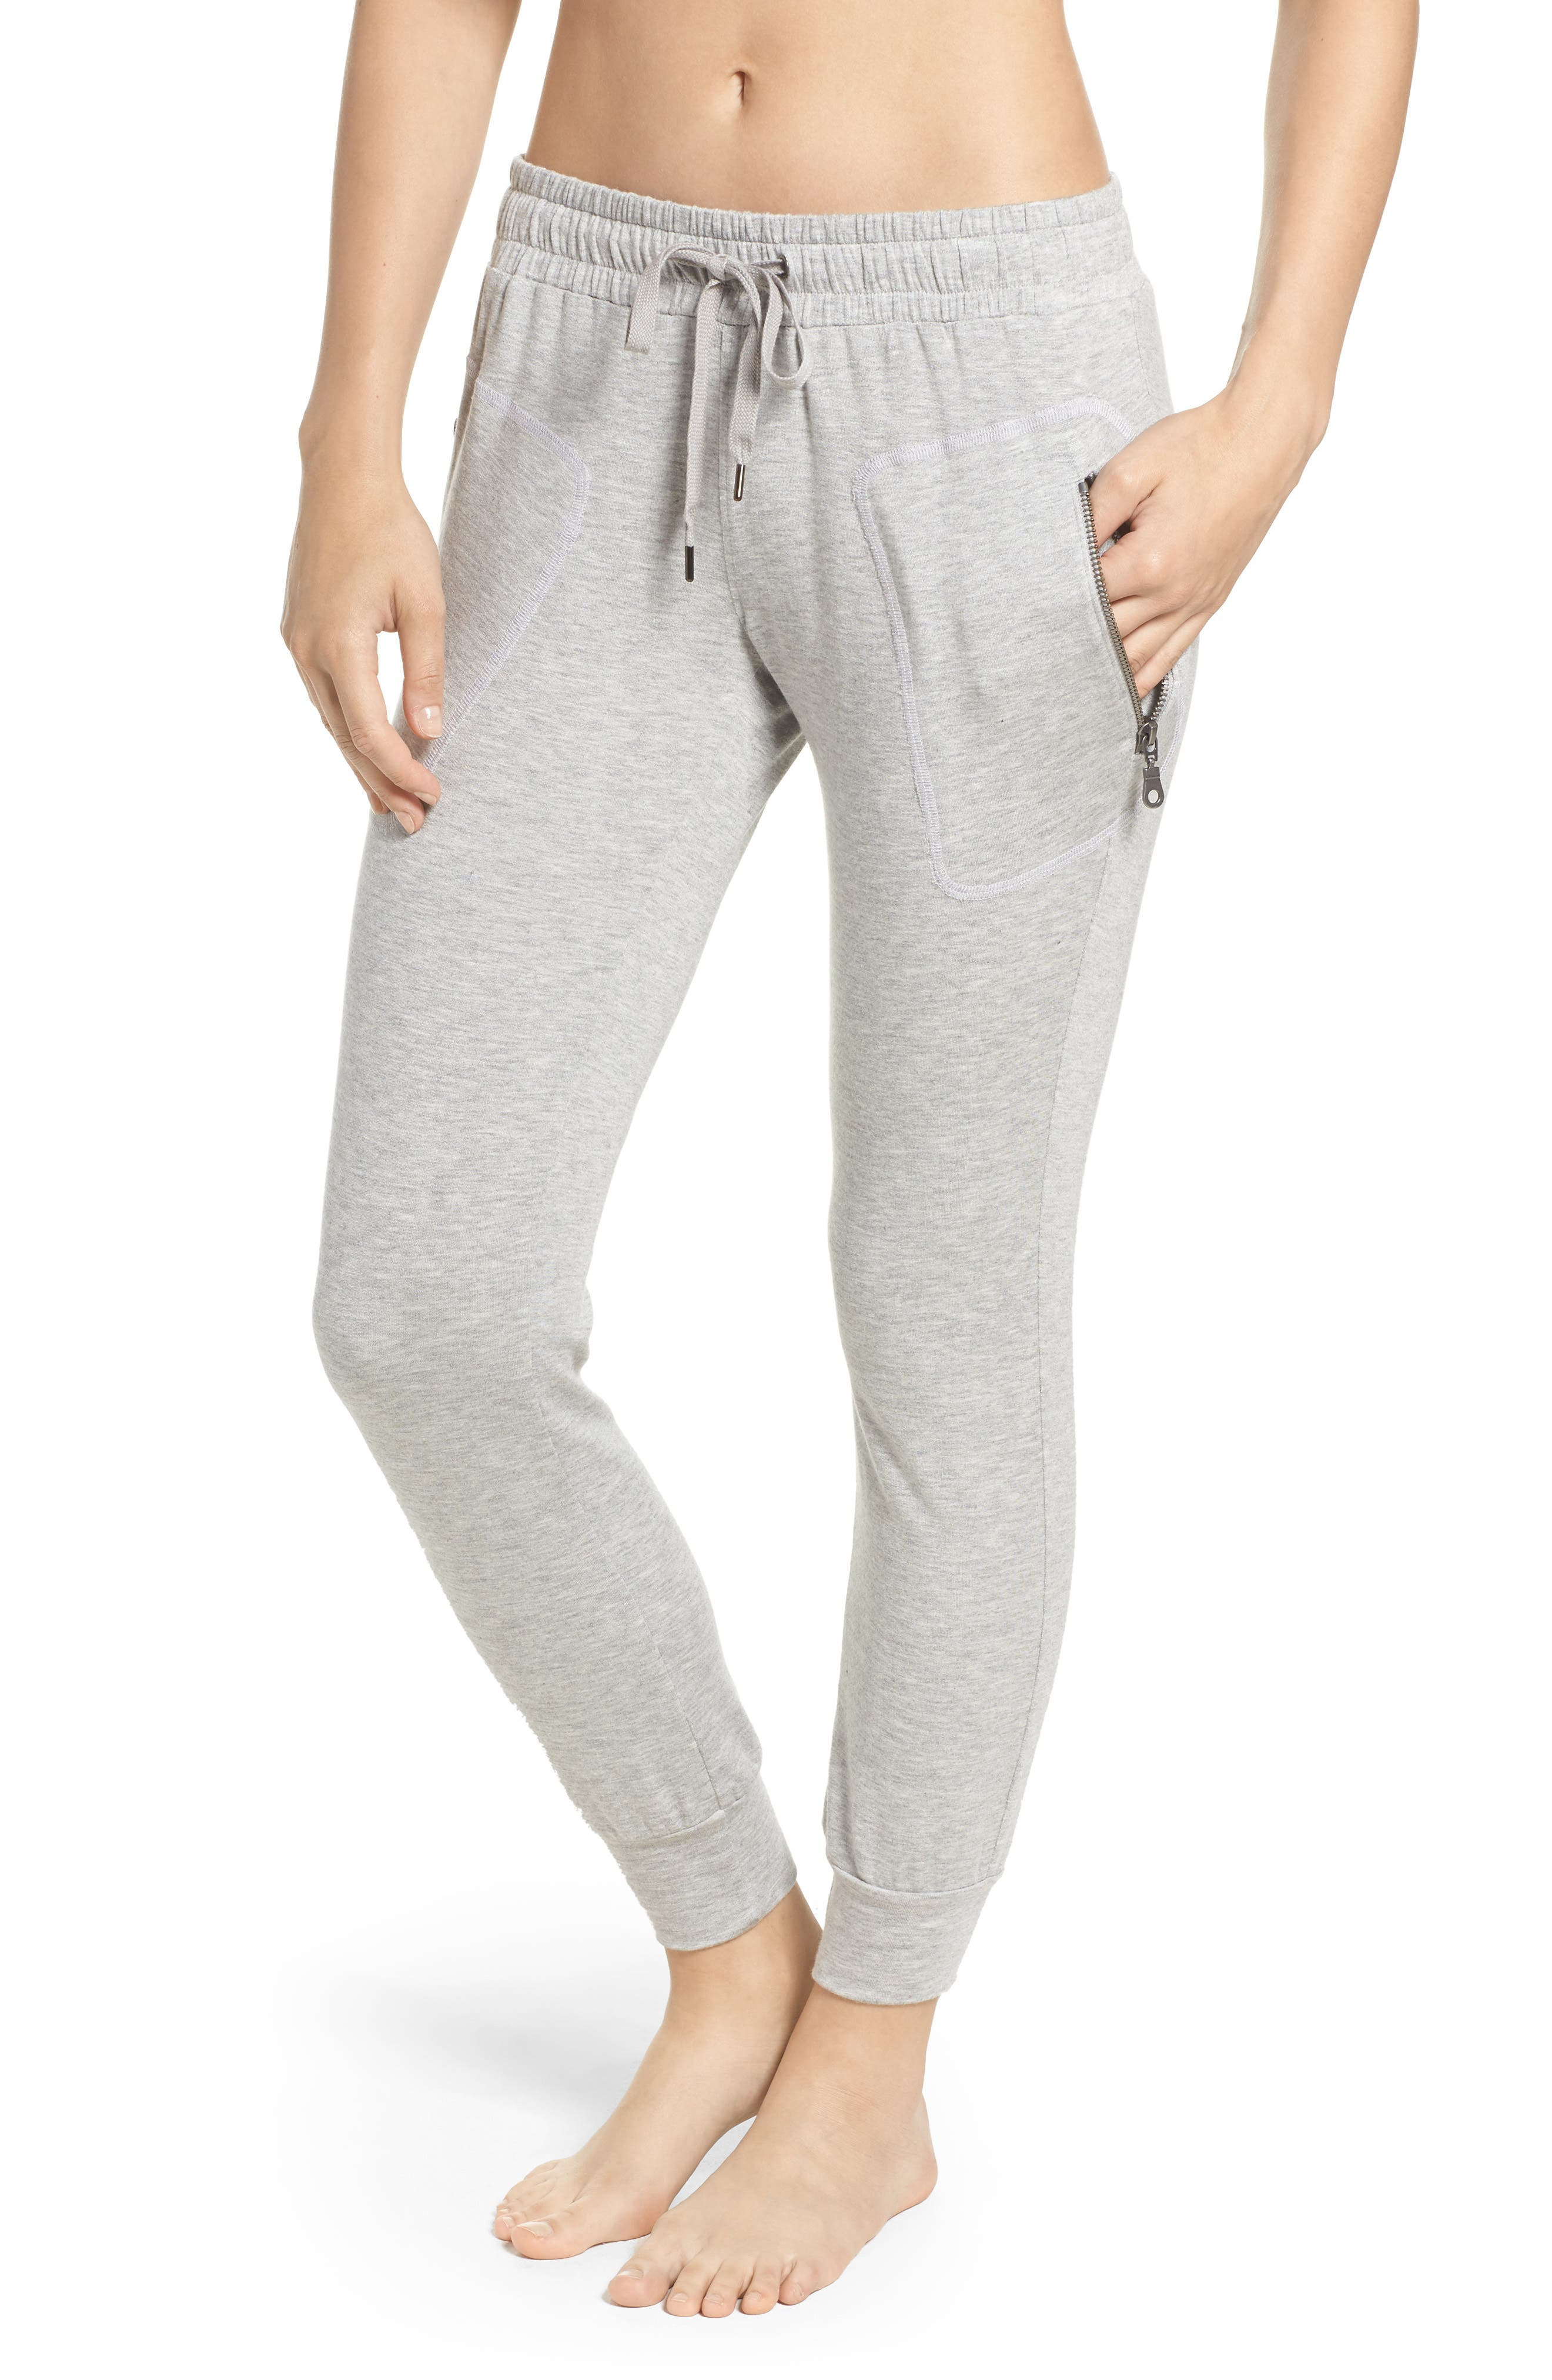 The New Penn Sweatpants,                         Main,                         color, Grey